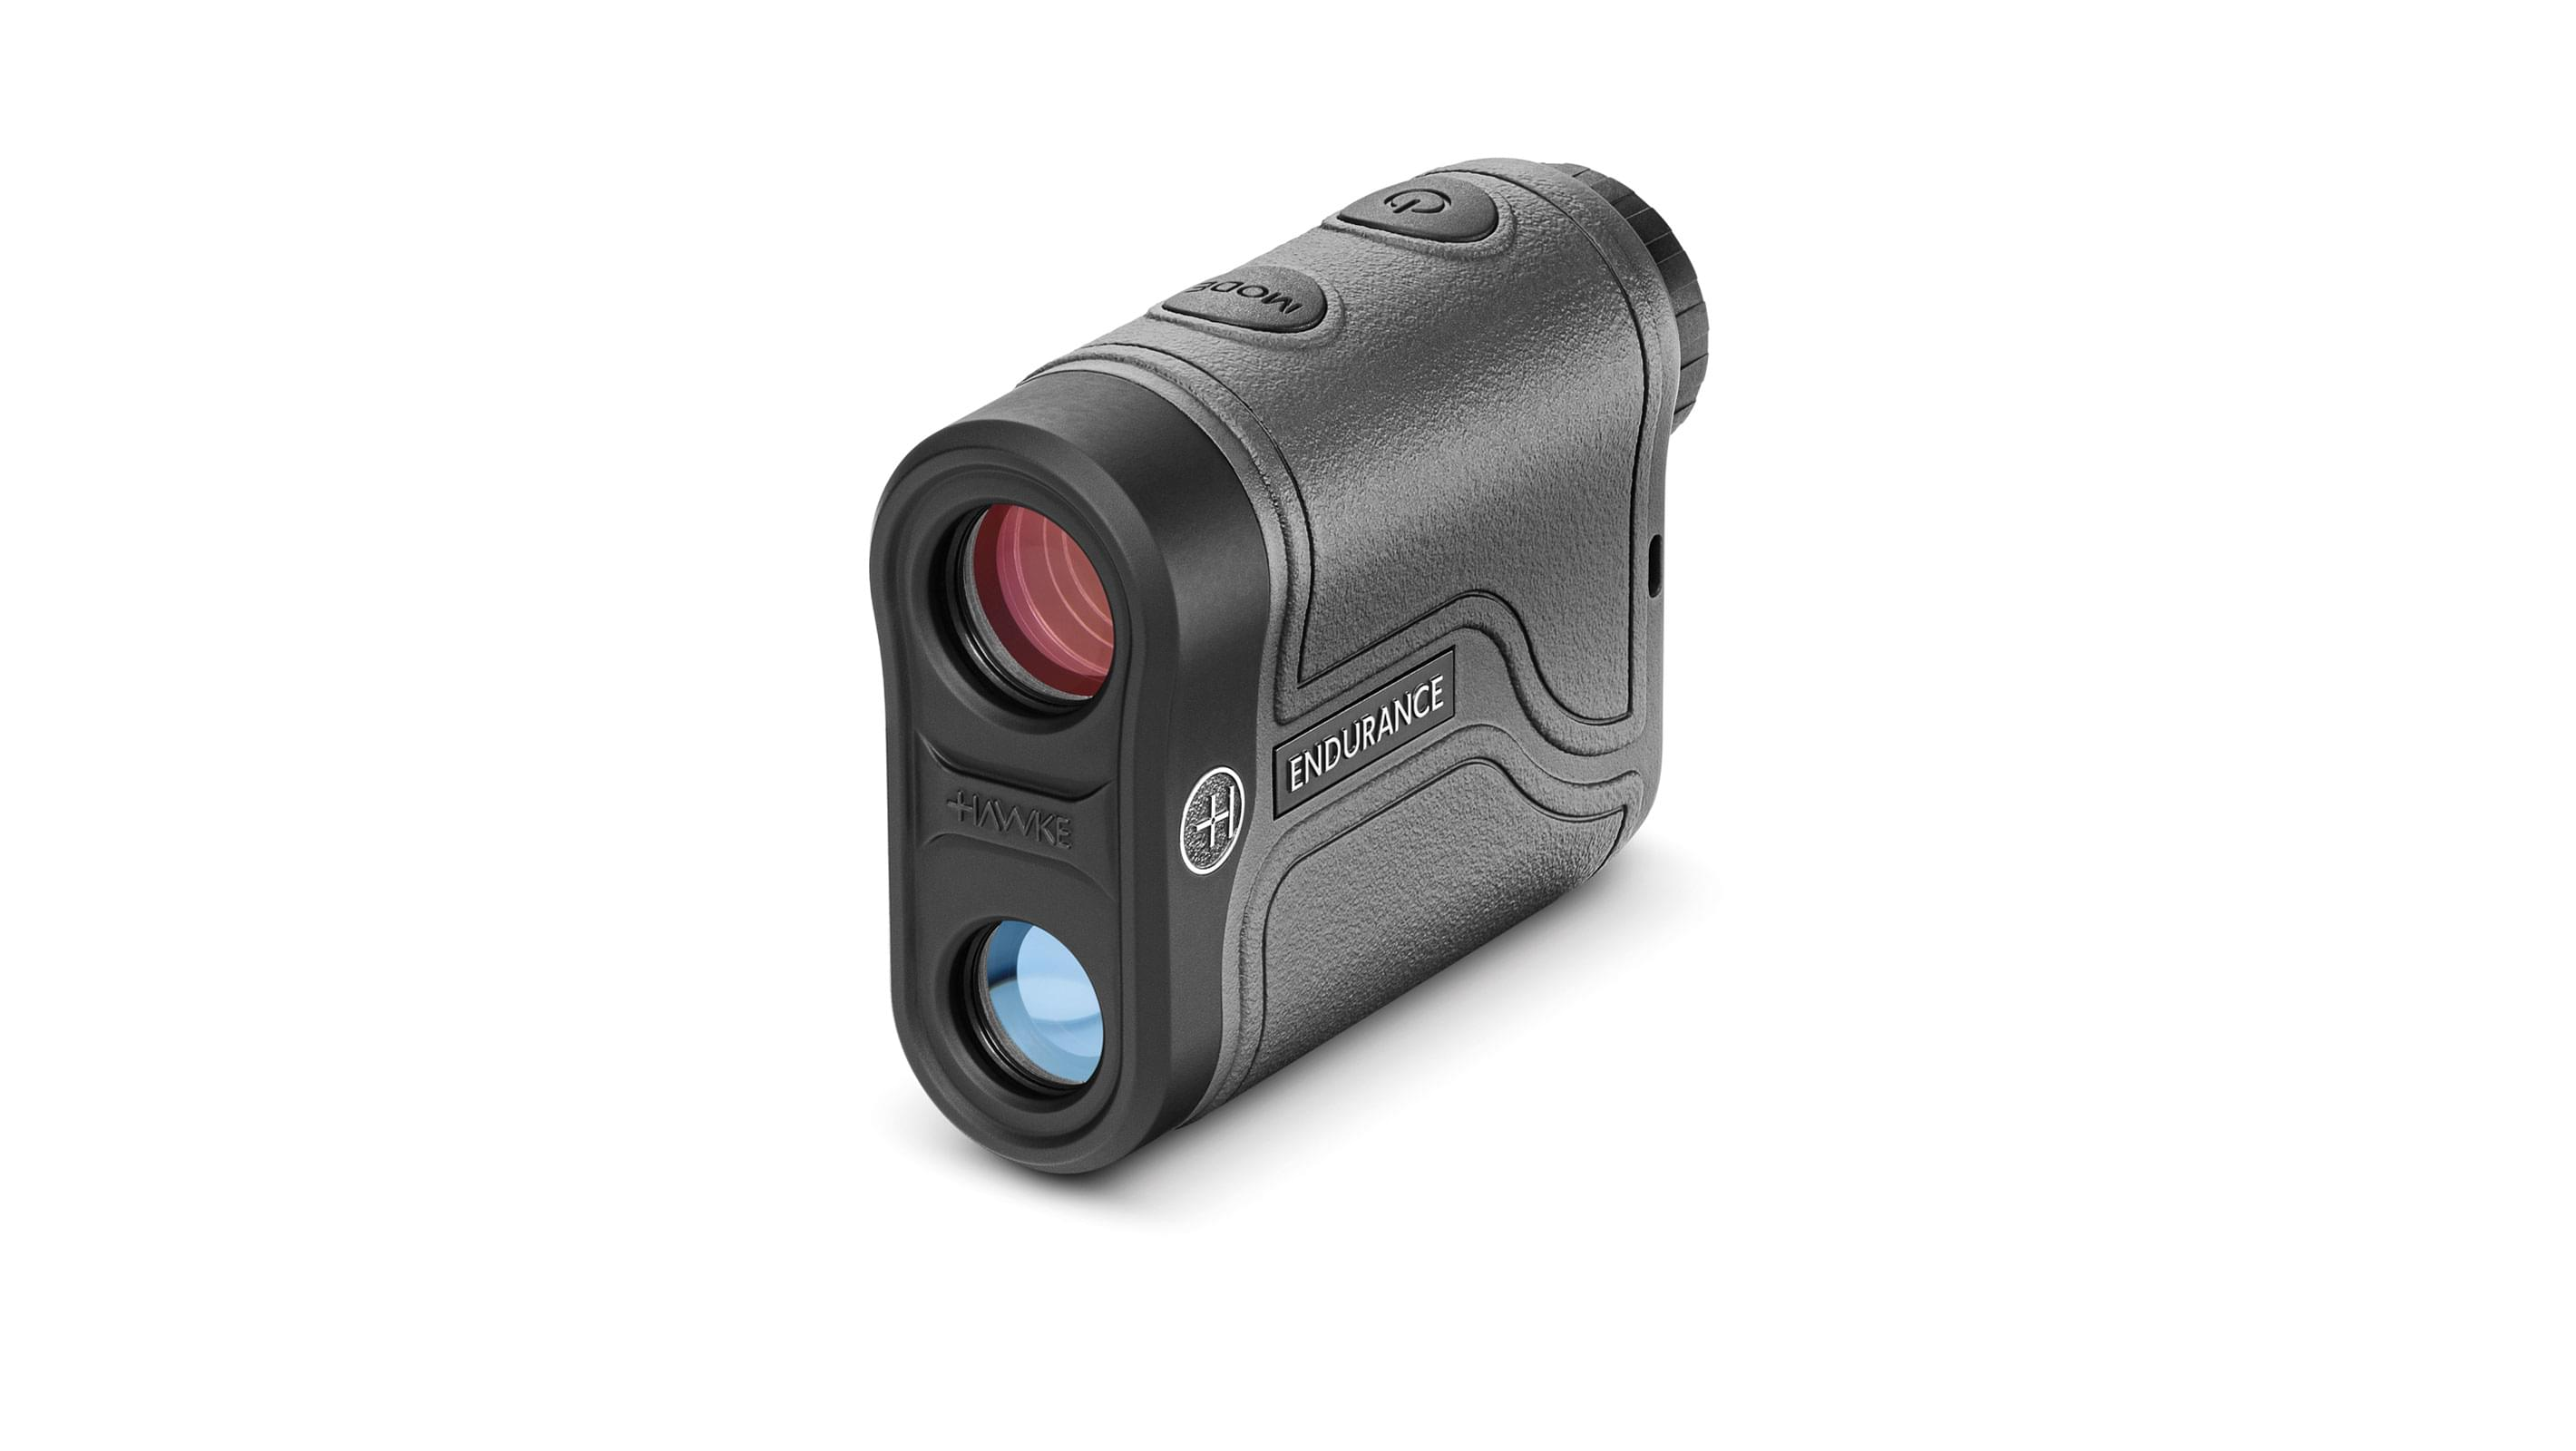 Laser Range Finder Endurance 1000